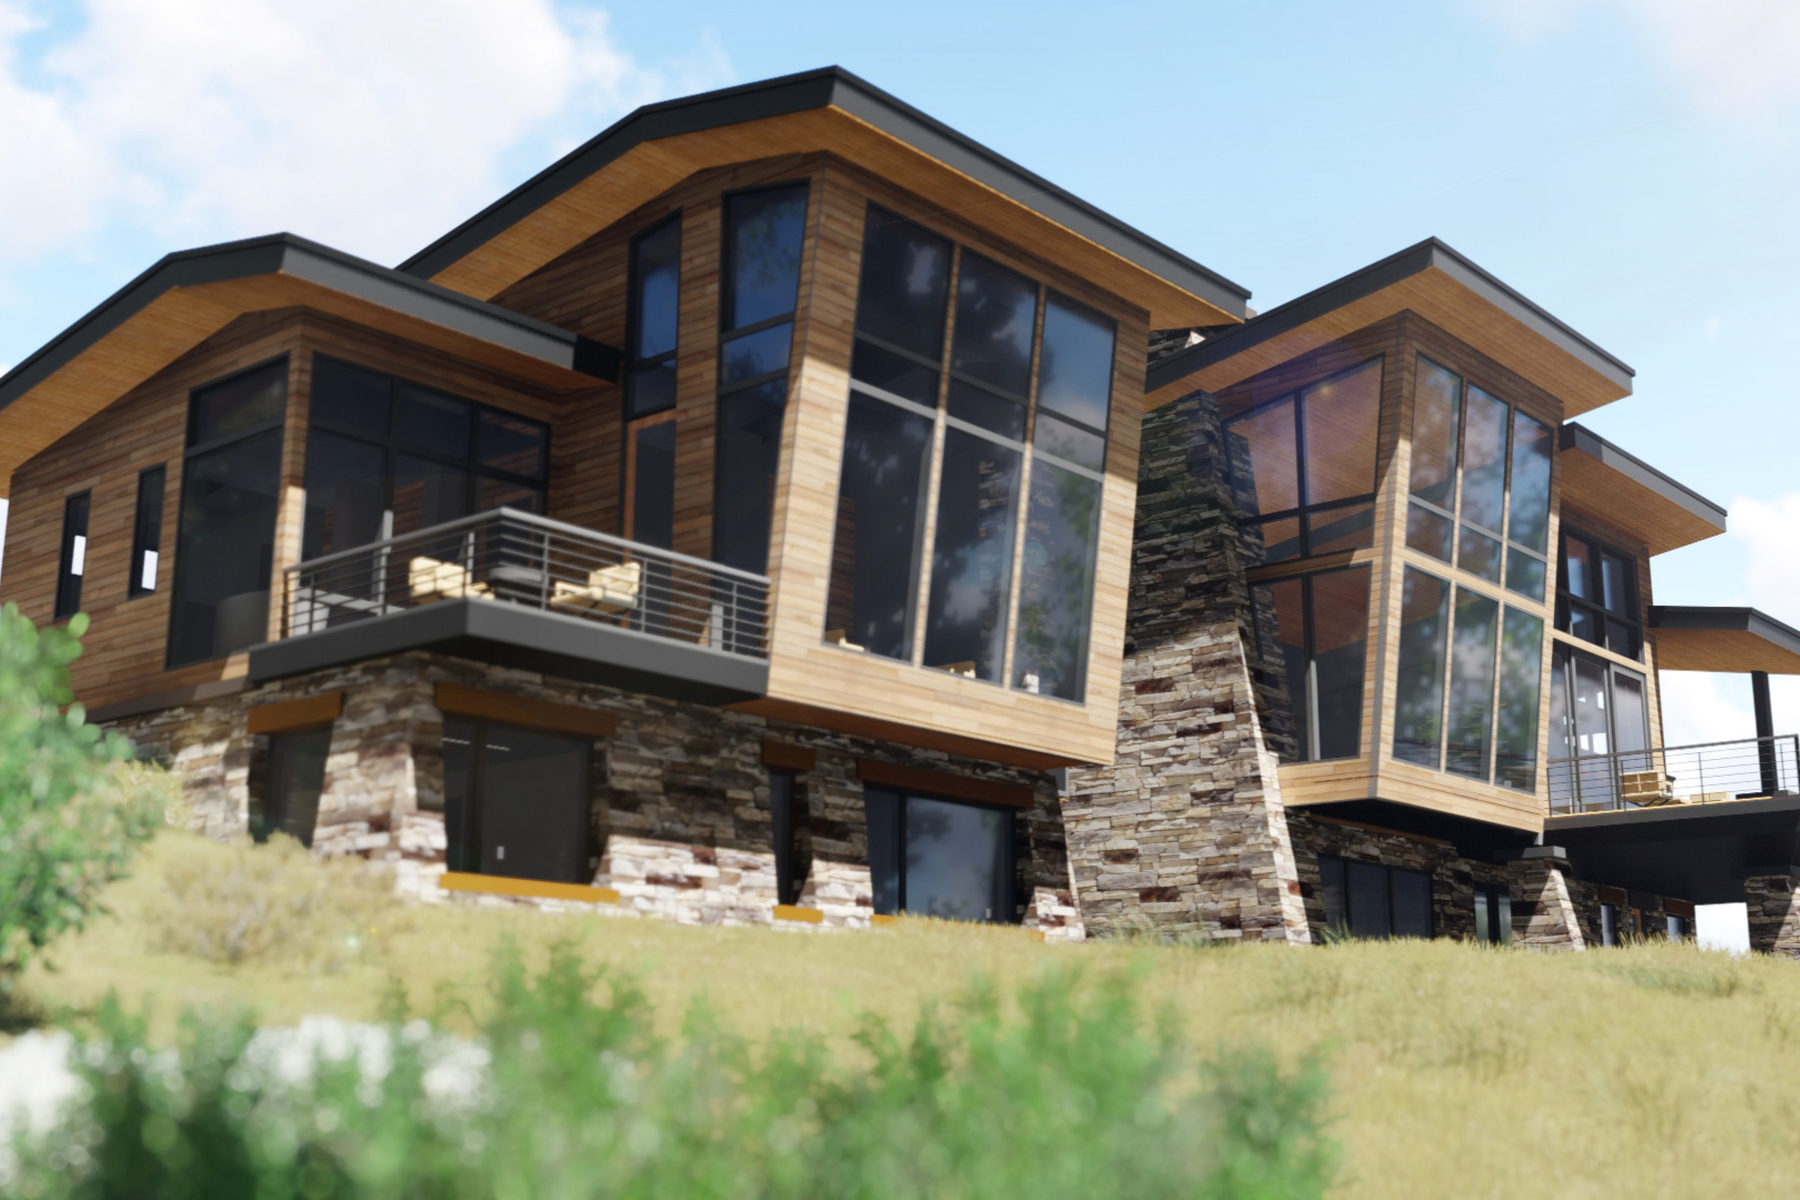 Casa Unifamiliar por un Venta en New Construction in the Colony 62 White Pine Canyon Rd Park City, Utah, 84098 Estados Unidos